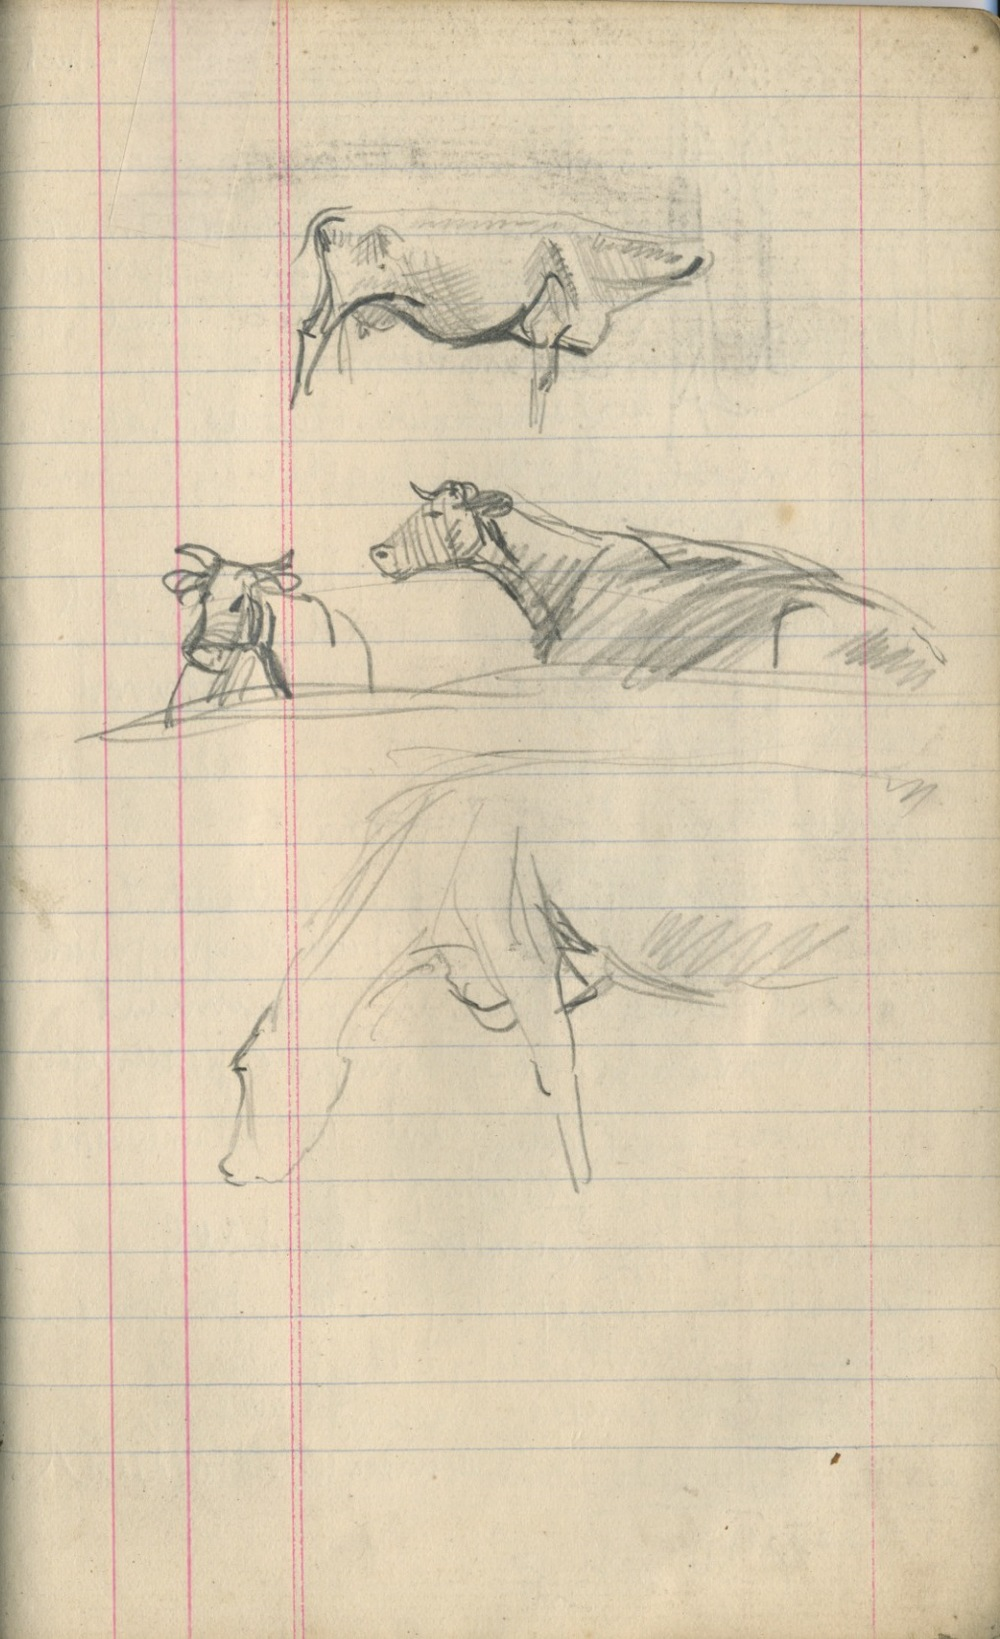 Sketches of Cattle